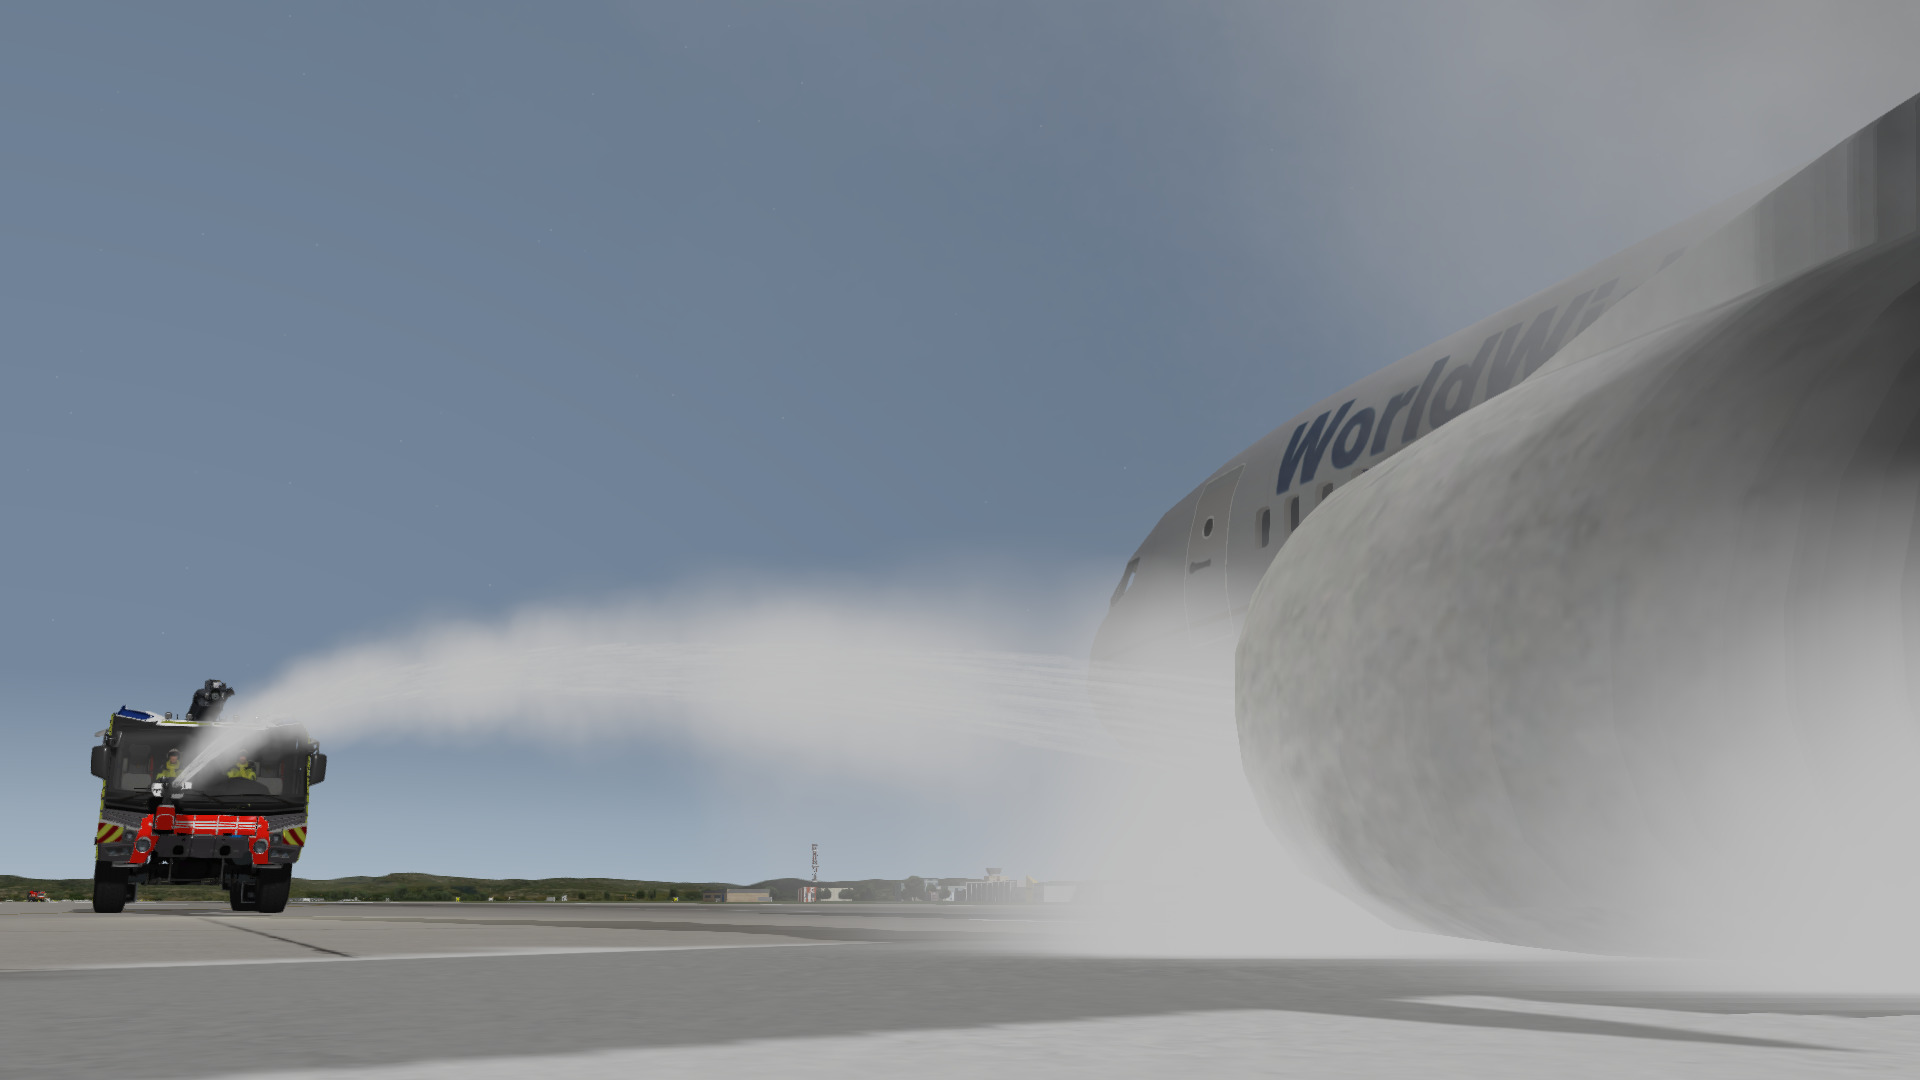 Rosenbauer Panther ARFF Truck fighting engine fire from a crashed aircraft using foam, inside the Training Simulator.